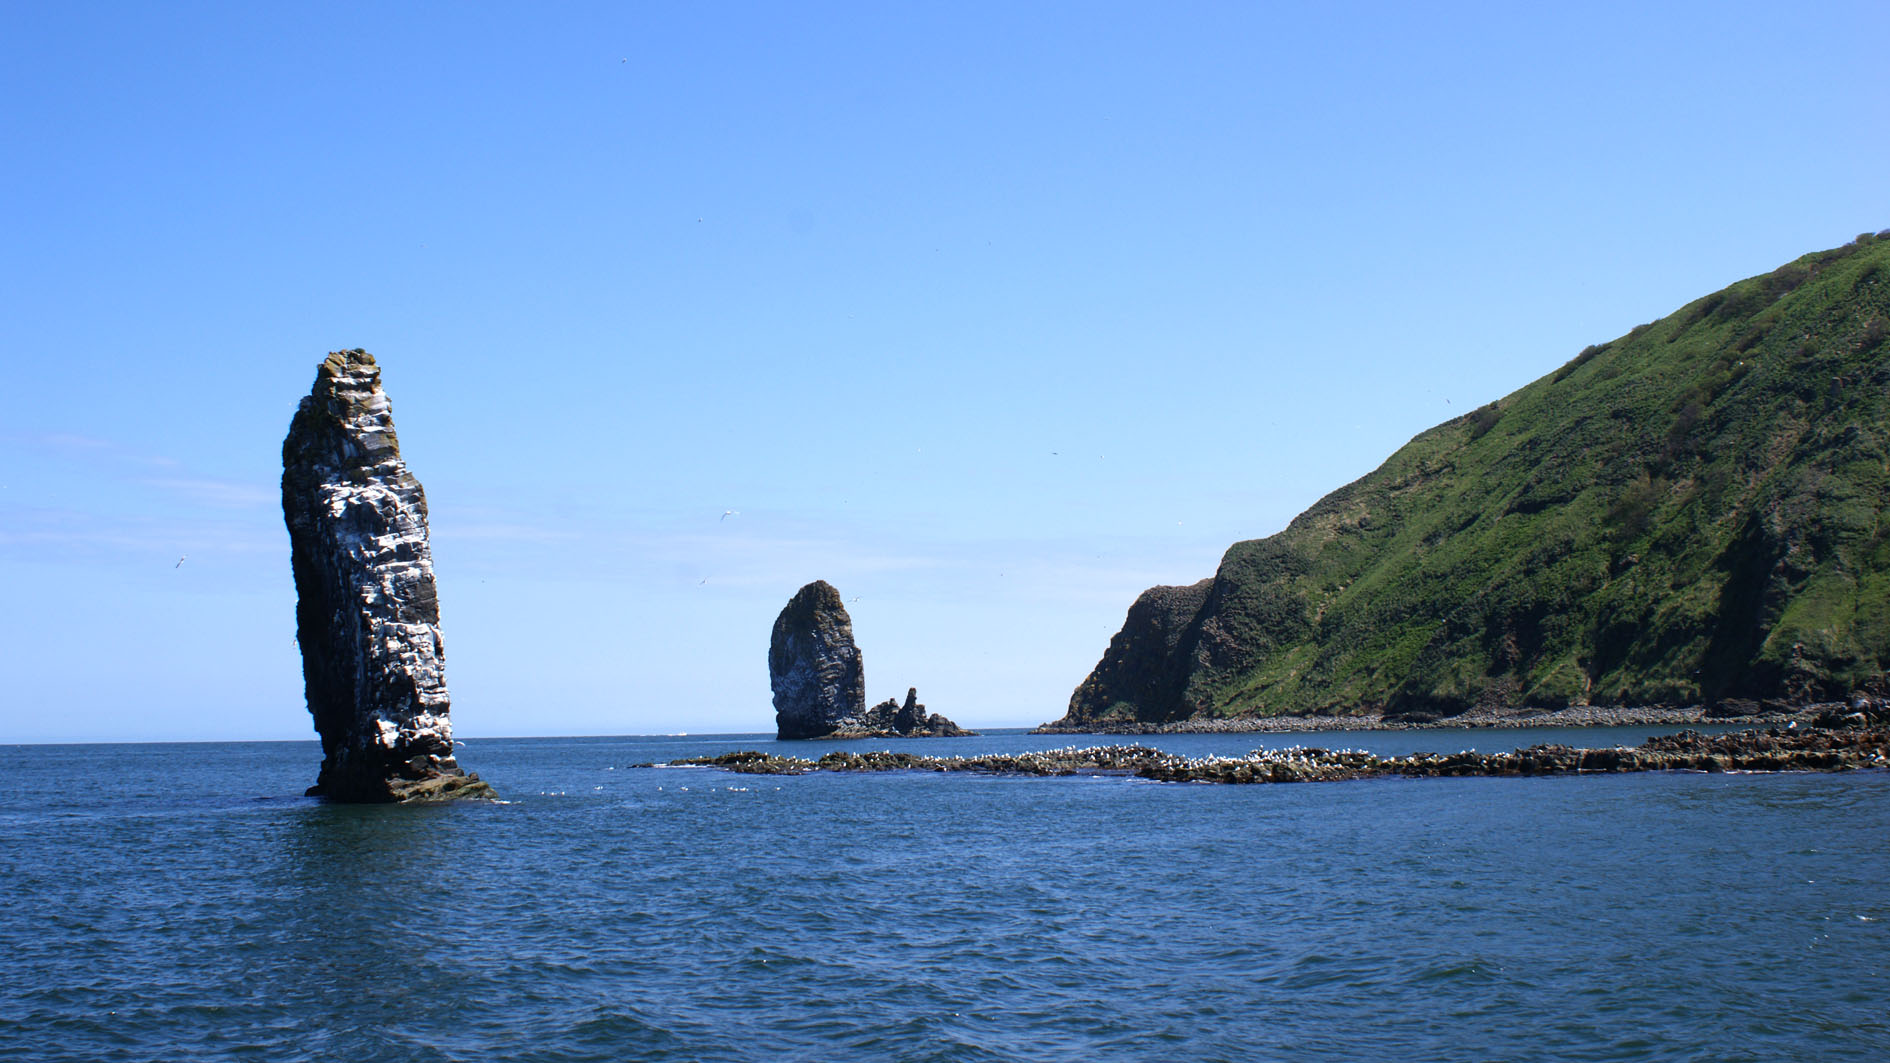 Starychkov Island in the Pacific Ocean